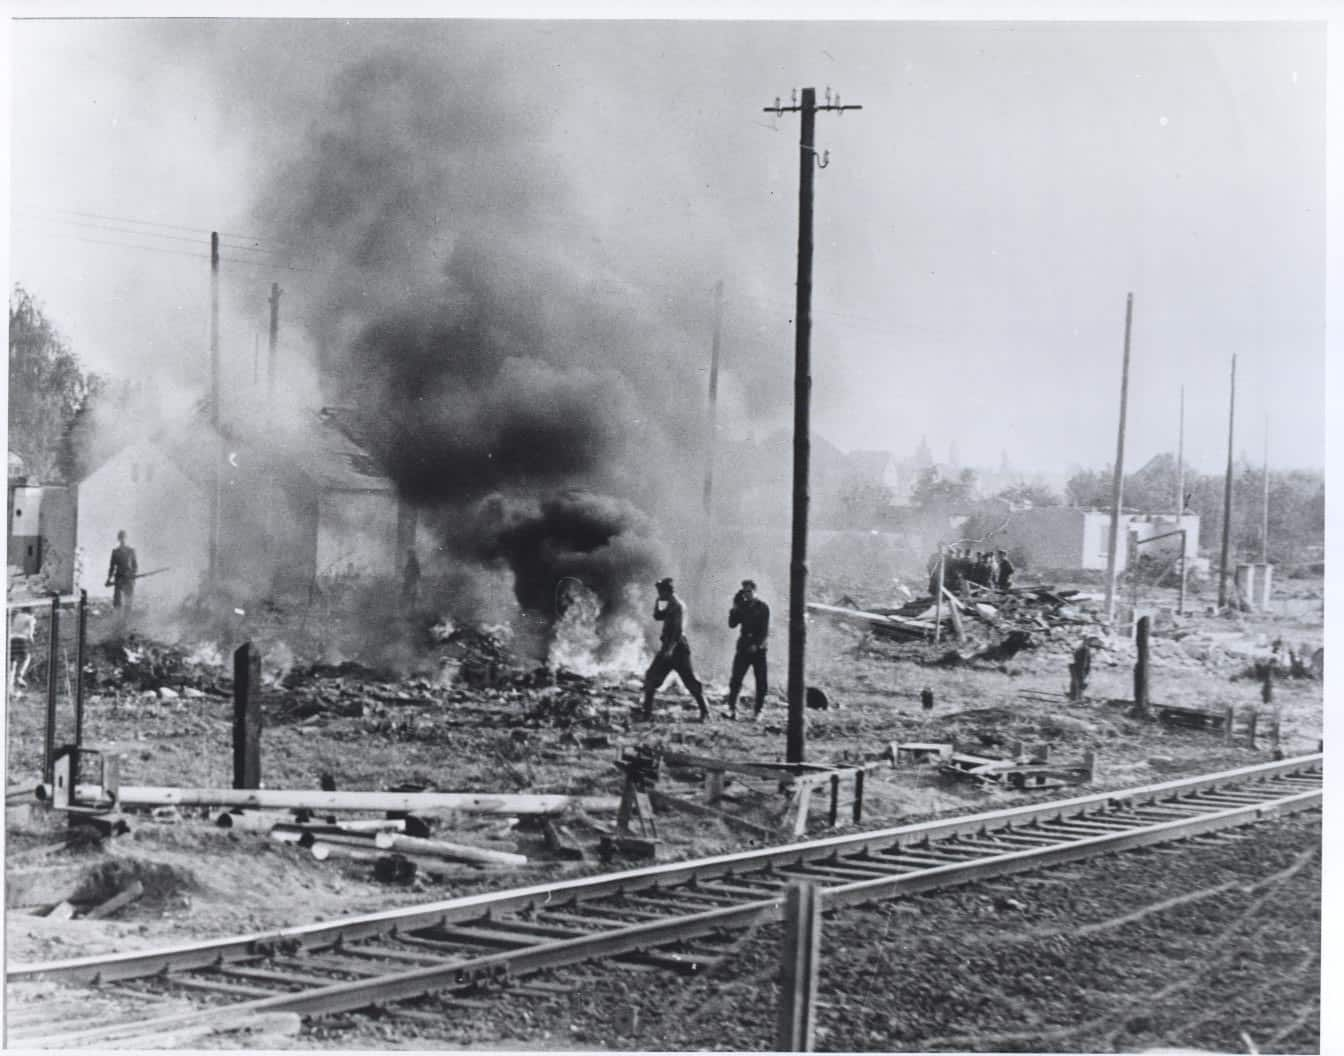 """East Germans continue to clear the land flanking the eastern side of the border, burning what's left of the houses that were razed to provide a clear line of fire at anyone seeking to cross into West Berlin. October 1961. From the CIA booklet """"A City Torn Apart: Building of the Berlin Wall."""""""